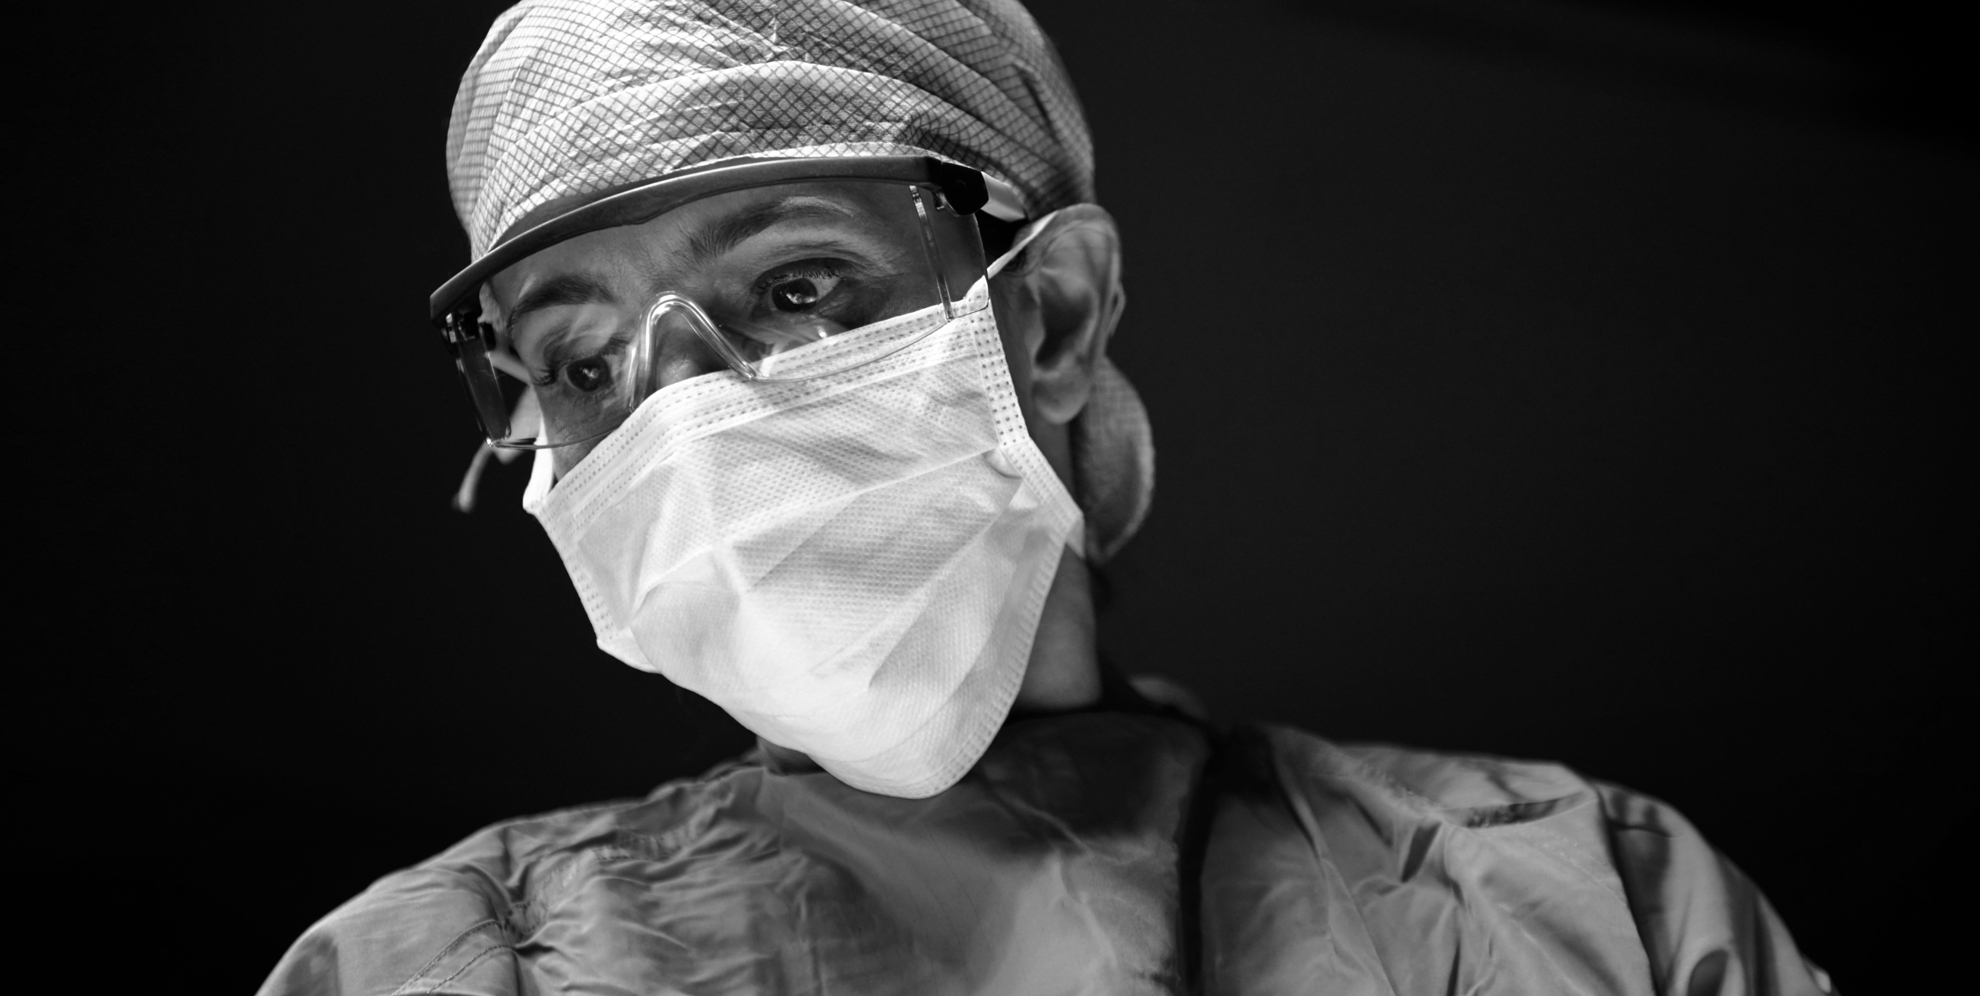 Surgeon in mask